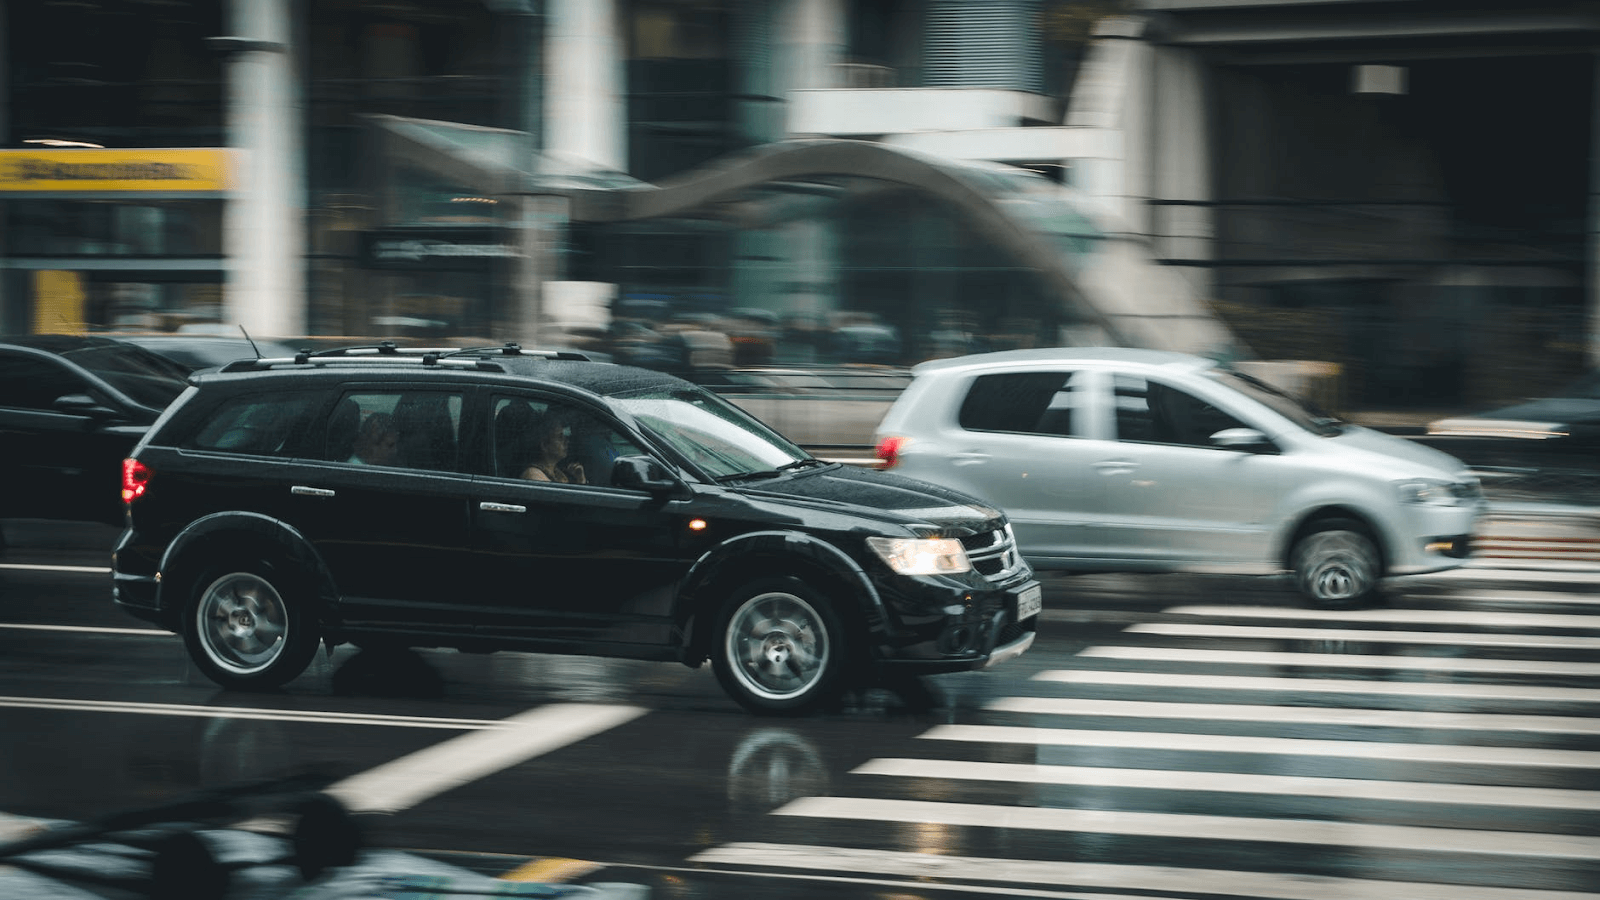 What is UberX: cars driving on a city street